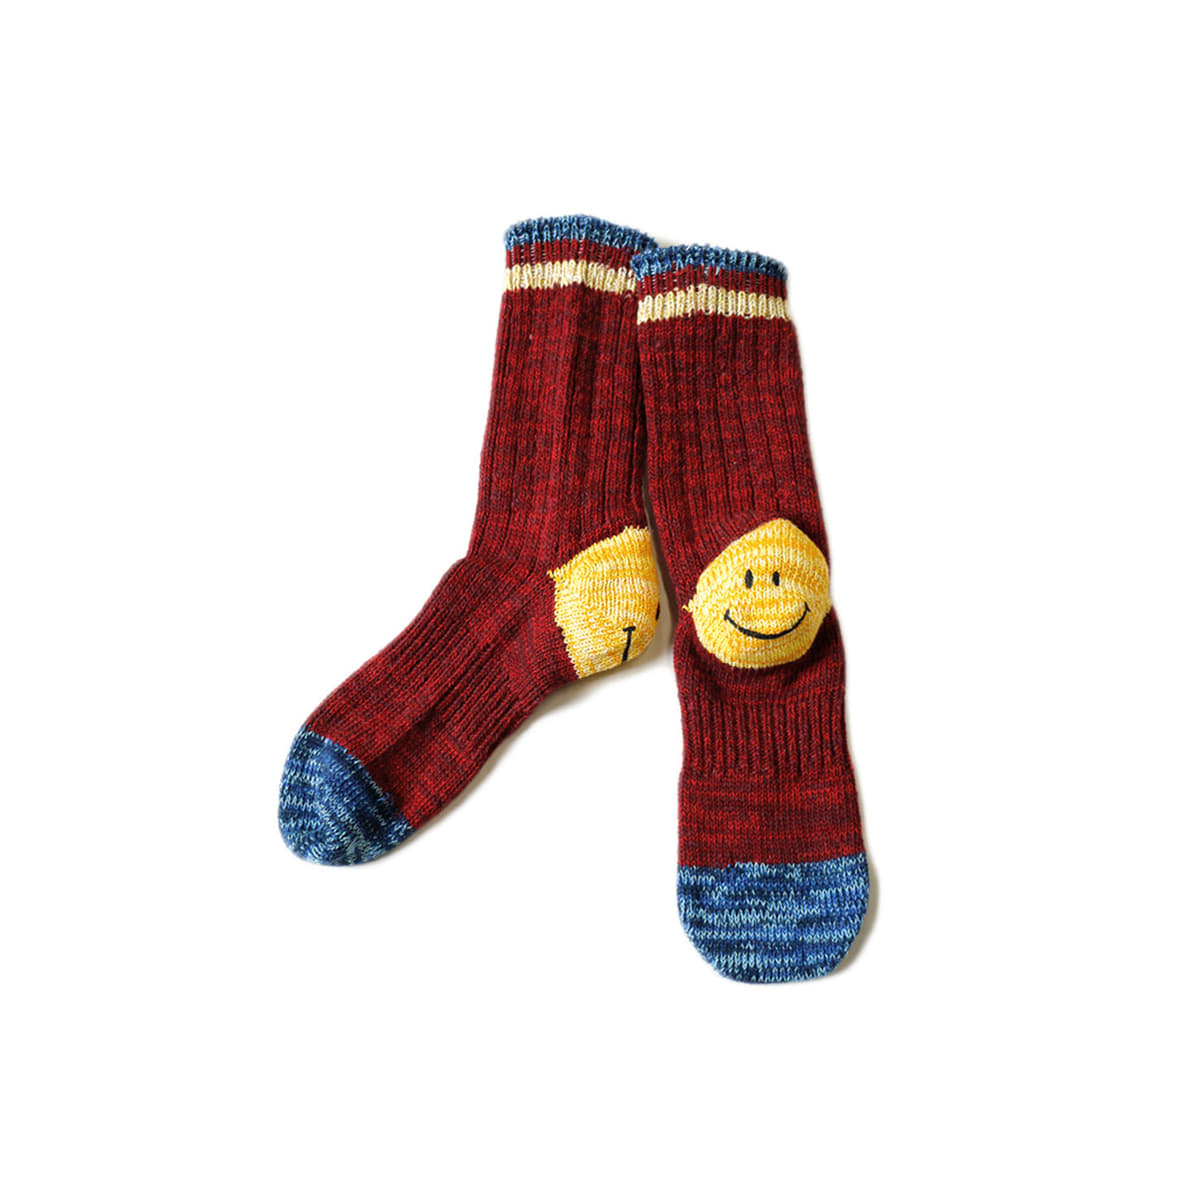 [KAPITAL] 64 YARNS IVY SMILE HEEL HOLD-WELL SOCKS 'RED'